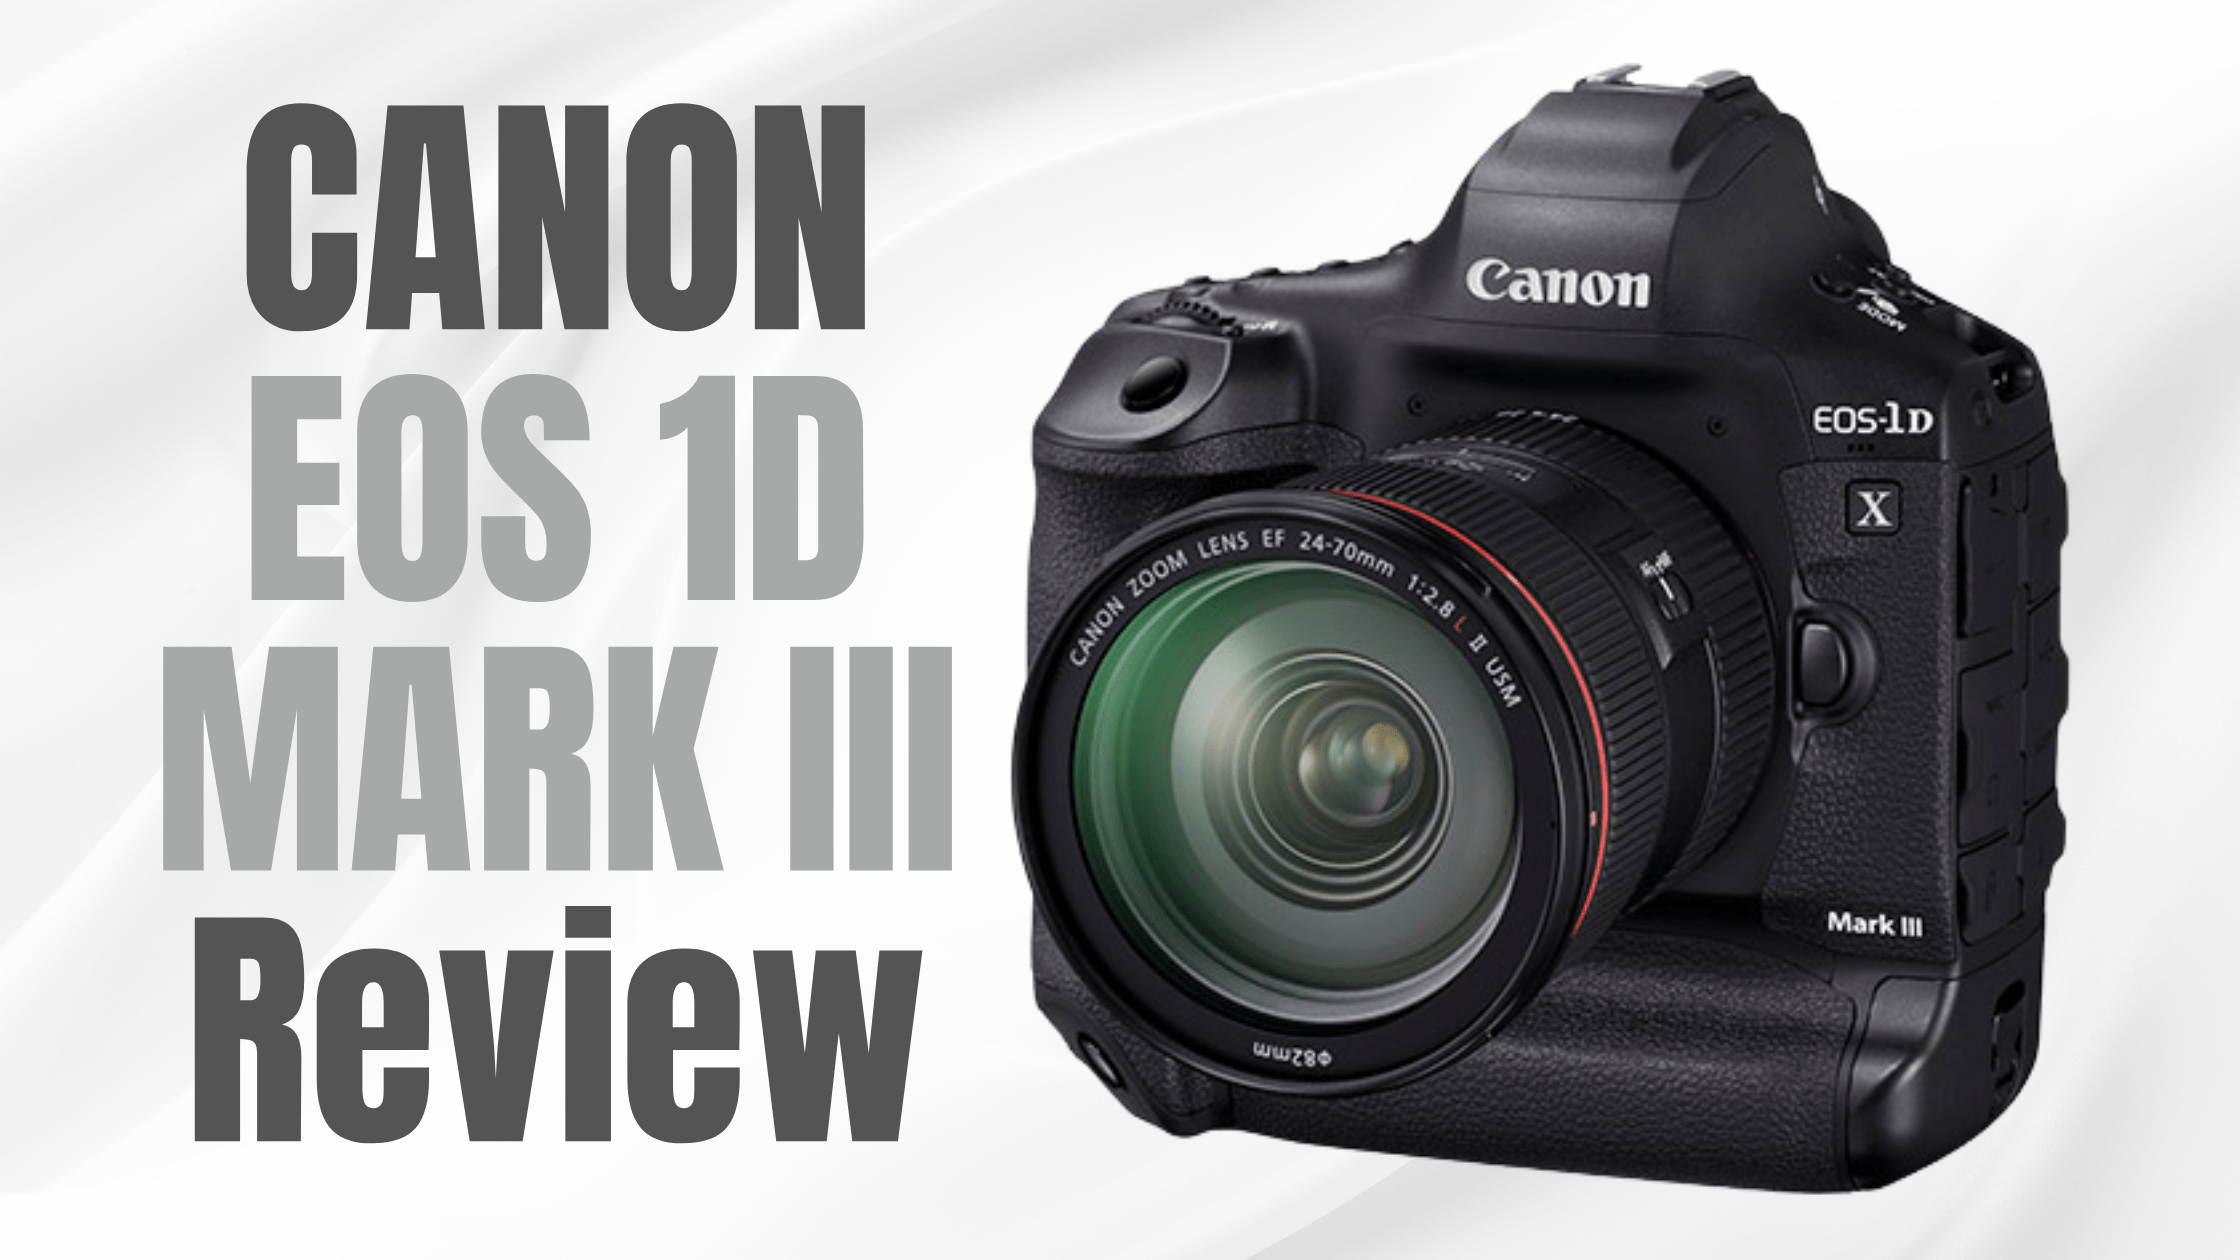 CANON EOS 1D MARK III Review (Harder, Better, Faster, Stronger)